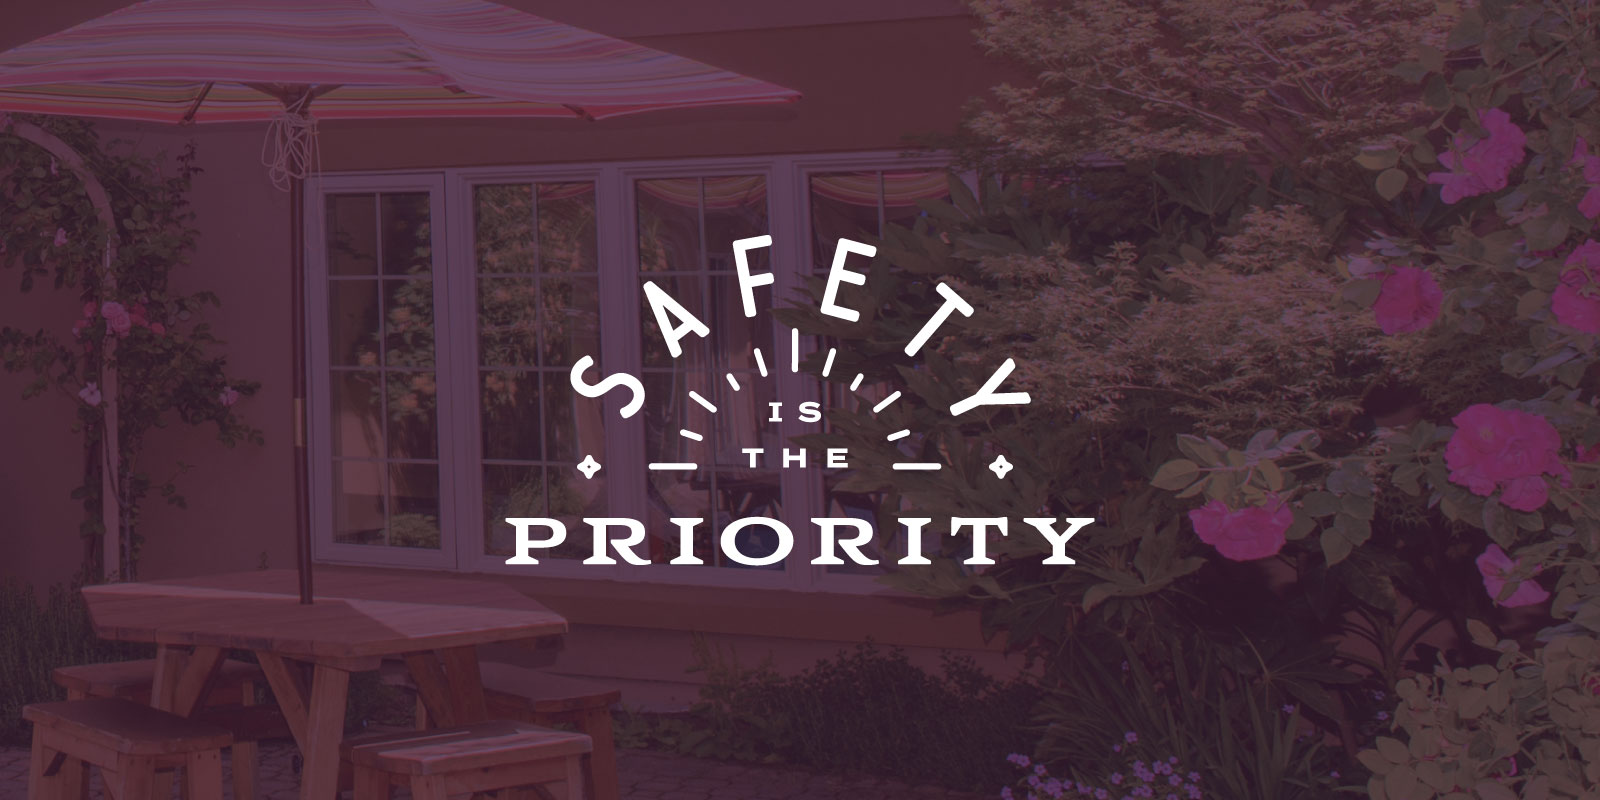 safety-is-the-prioty-text